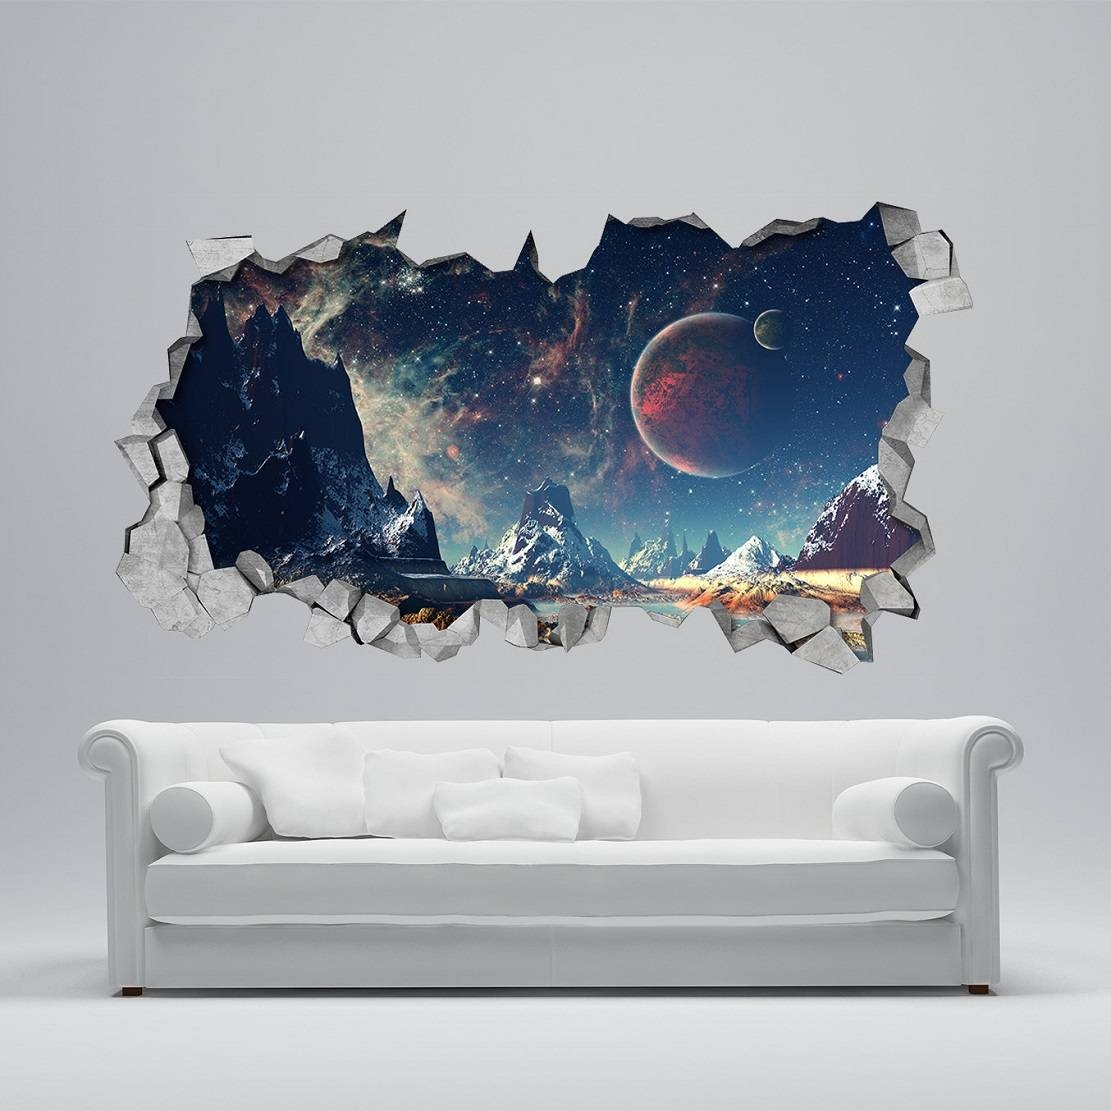 25 Unparalleled 3D Wall Art For Charming Homewall Decor Vill Pertaining To Most Current Astronaut 3D Wall Art (View 2 of 20)